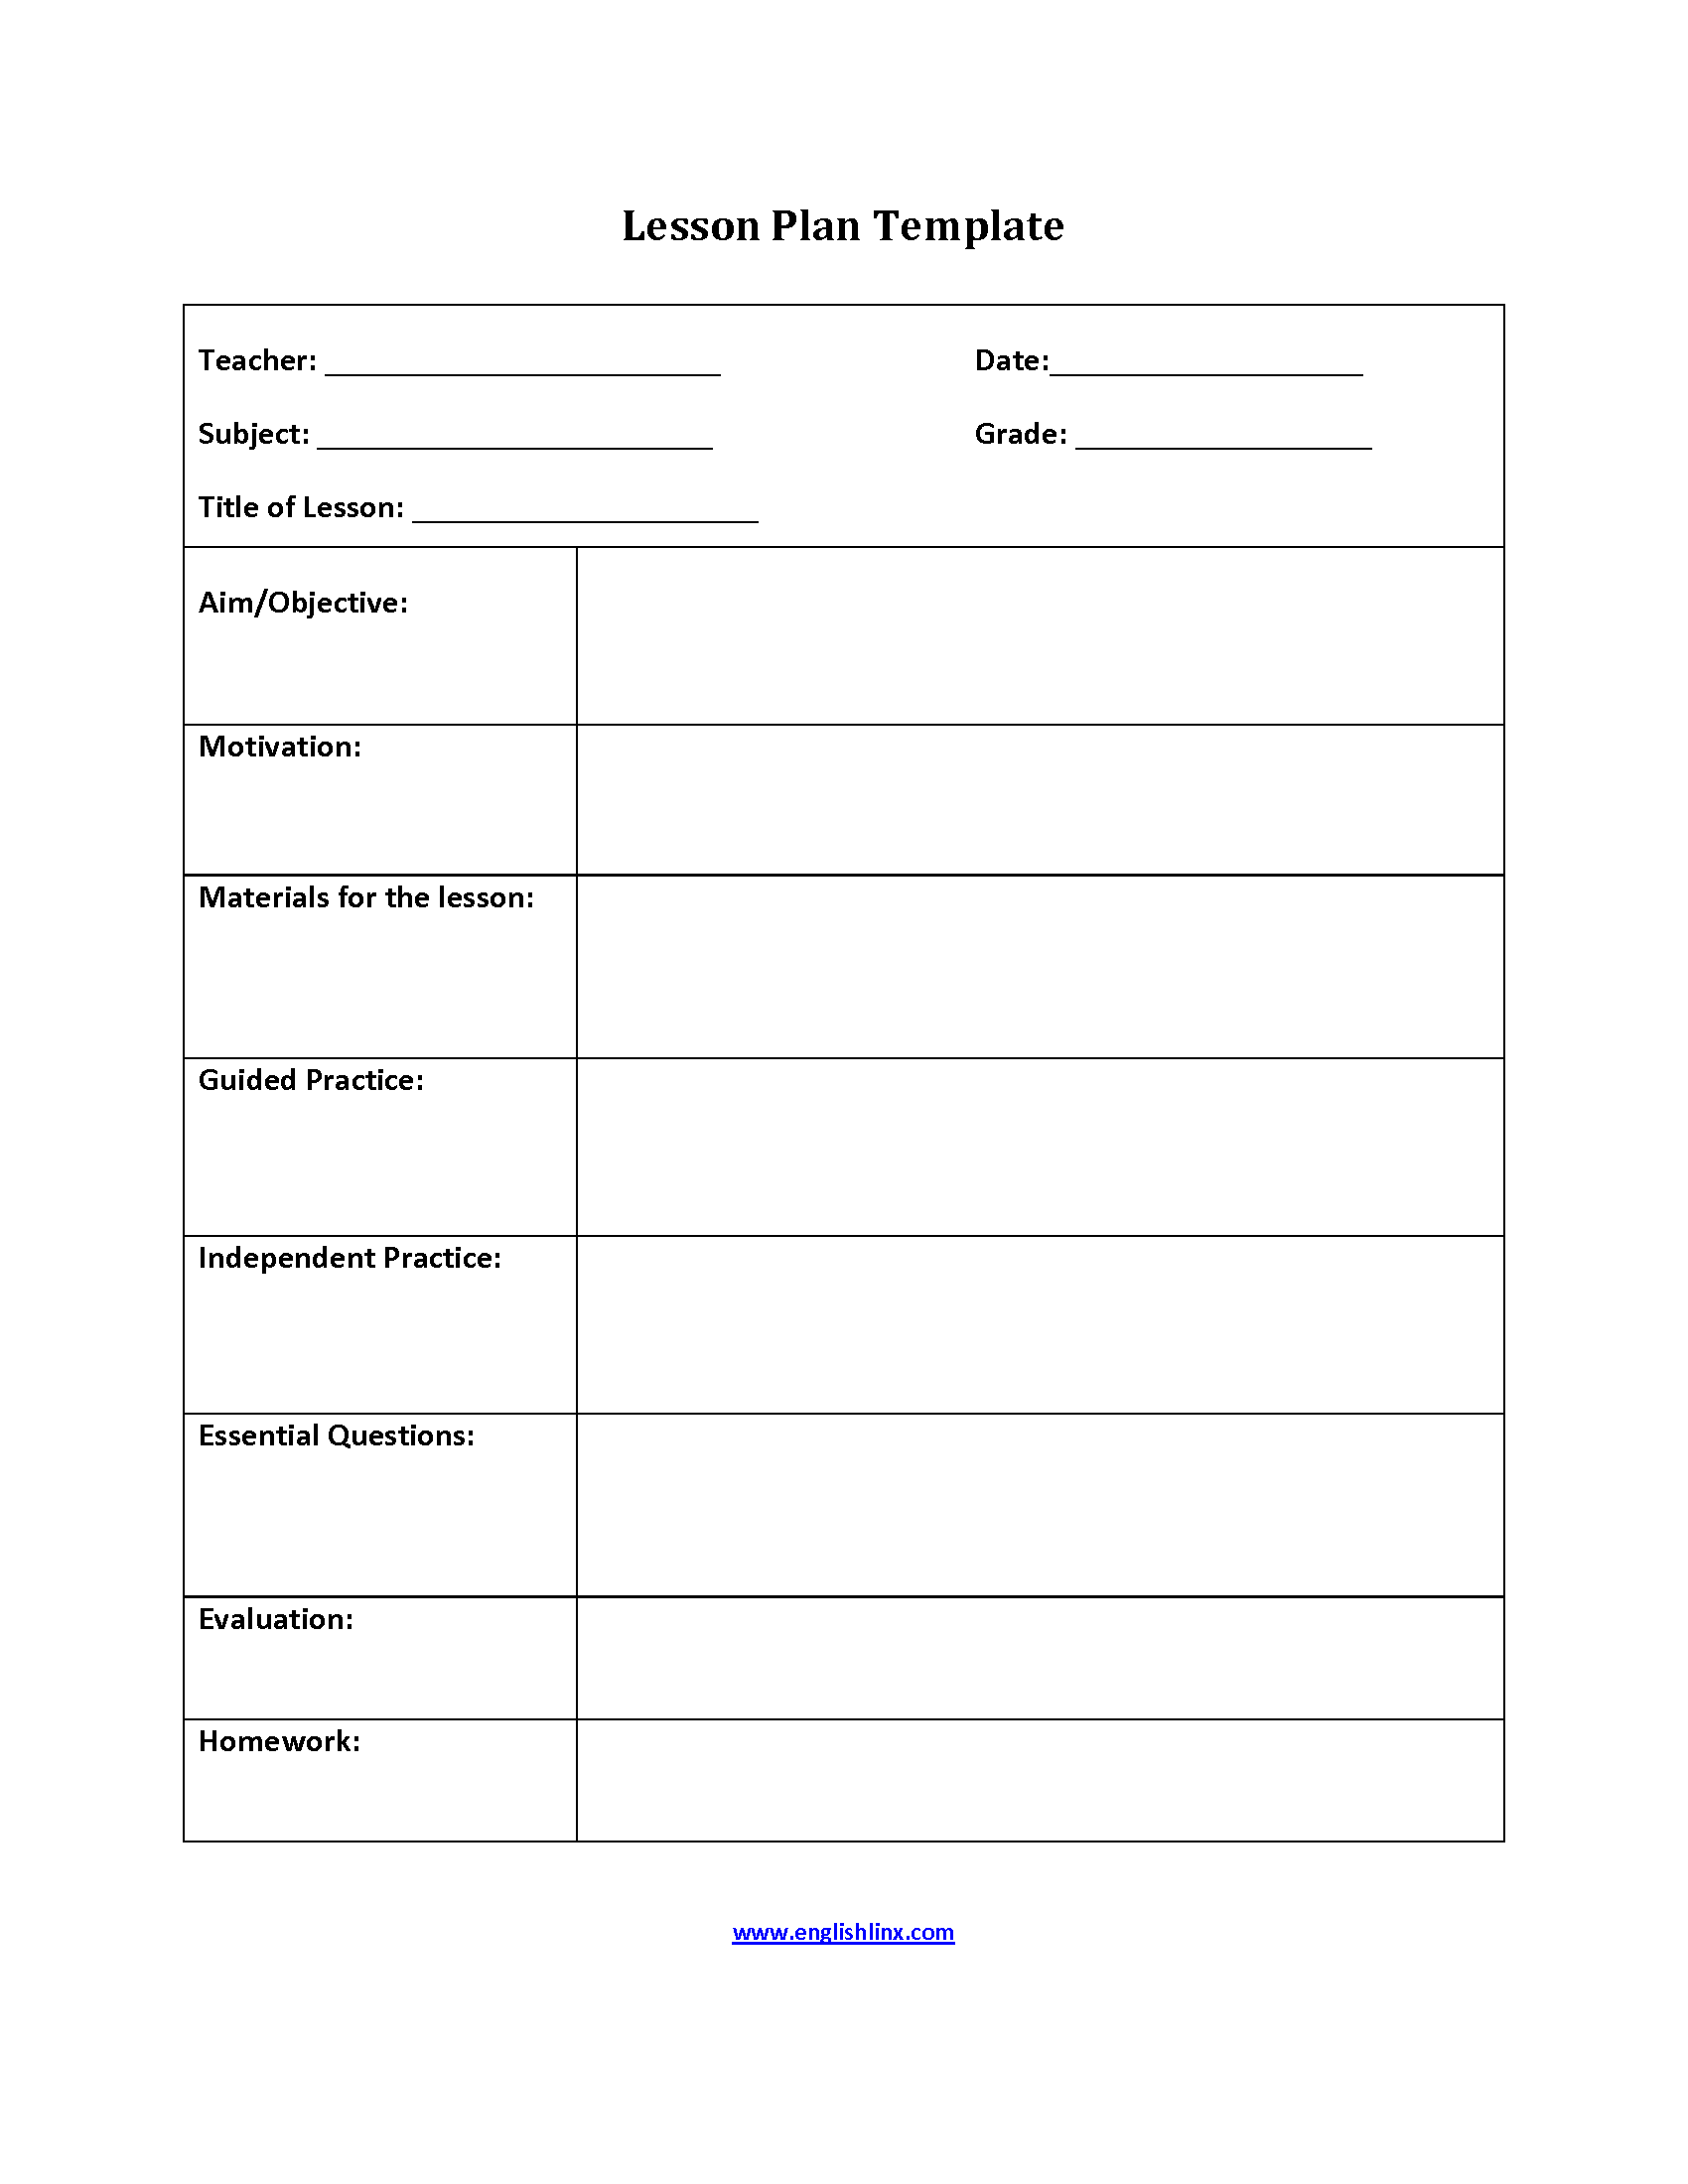 6 point lesson plan template 12th grade reading lesson plans 10 super innovative